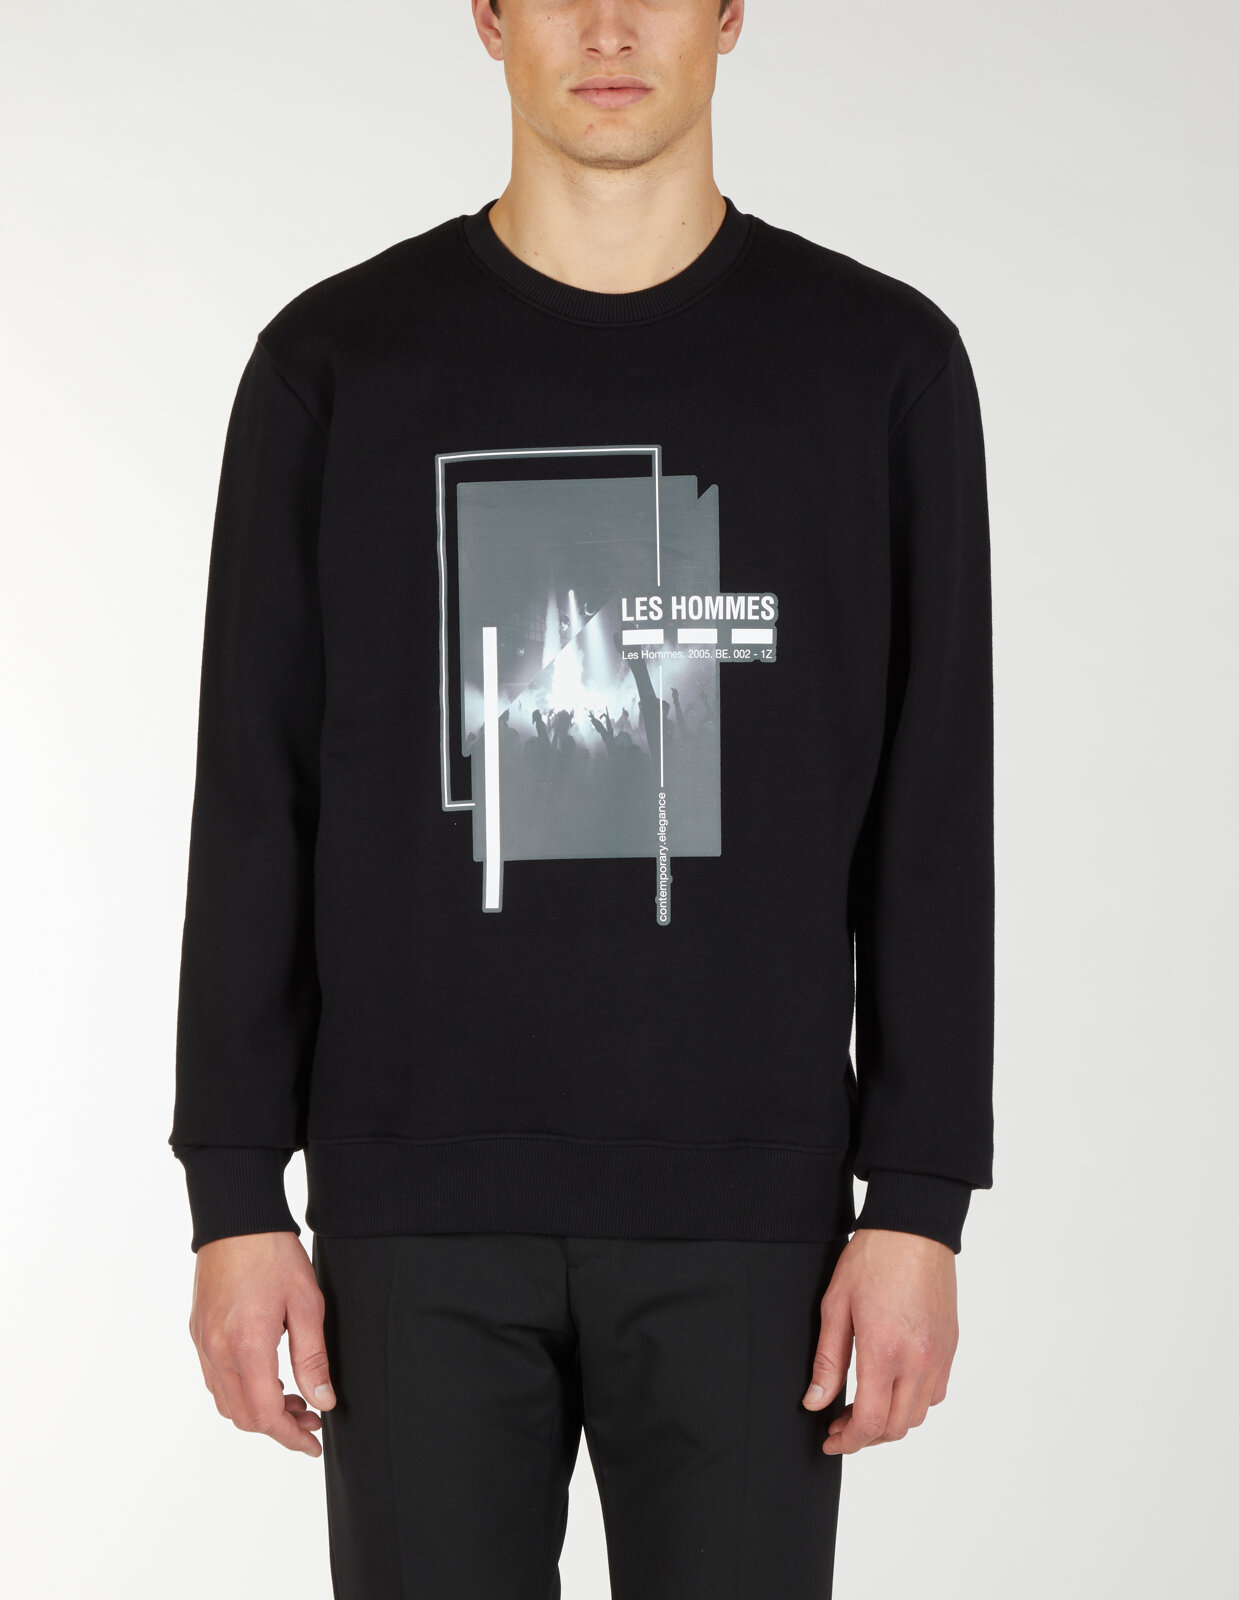 Round Neck Sweatshirt With Lhns Freedom Print - Les Hommes